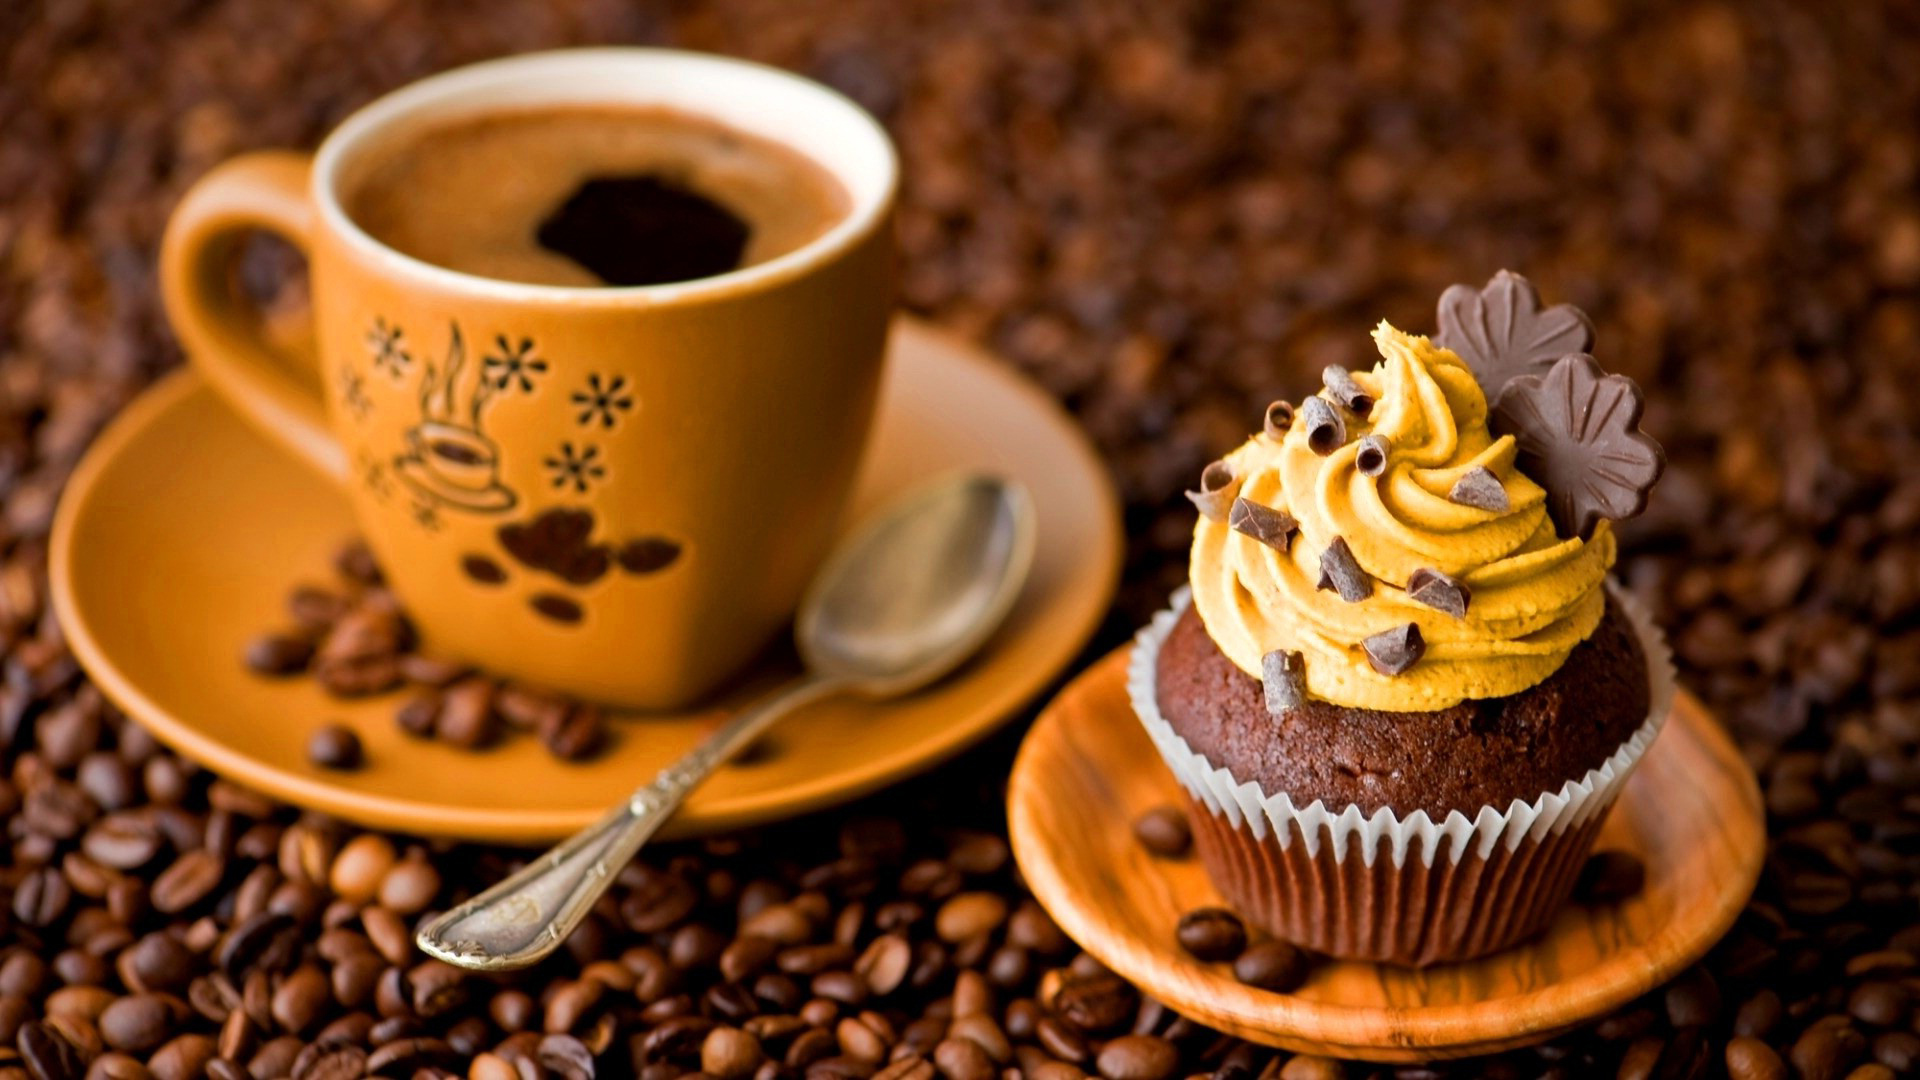 Cupcake Iphone Wallpaper Download Coffee And Cream Wallpaper Gallery